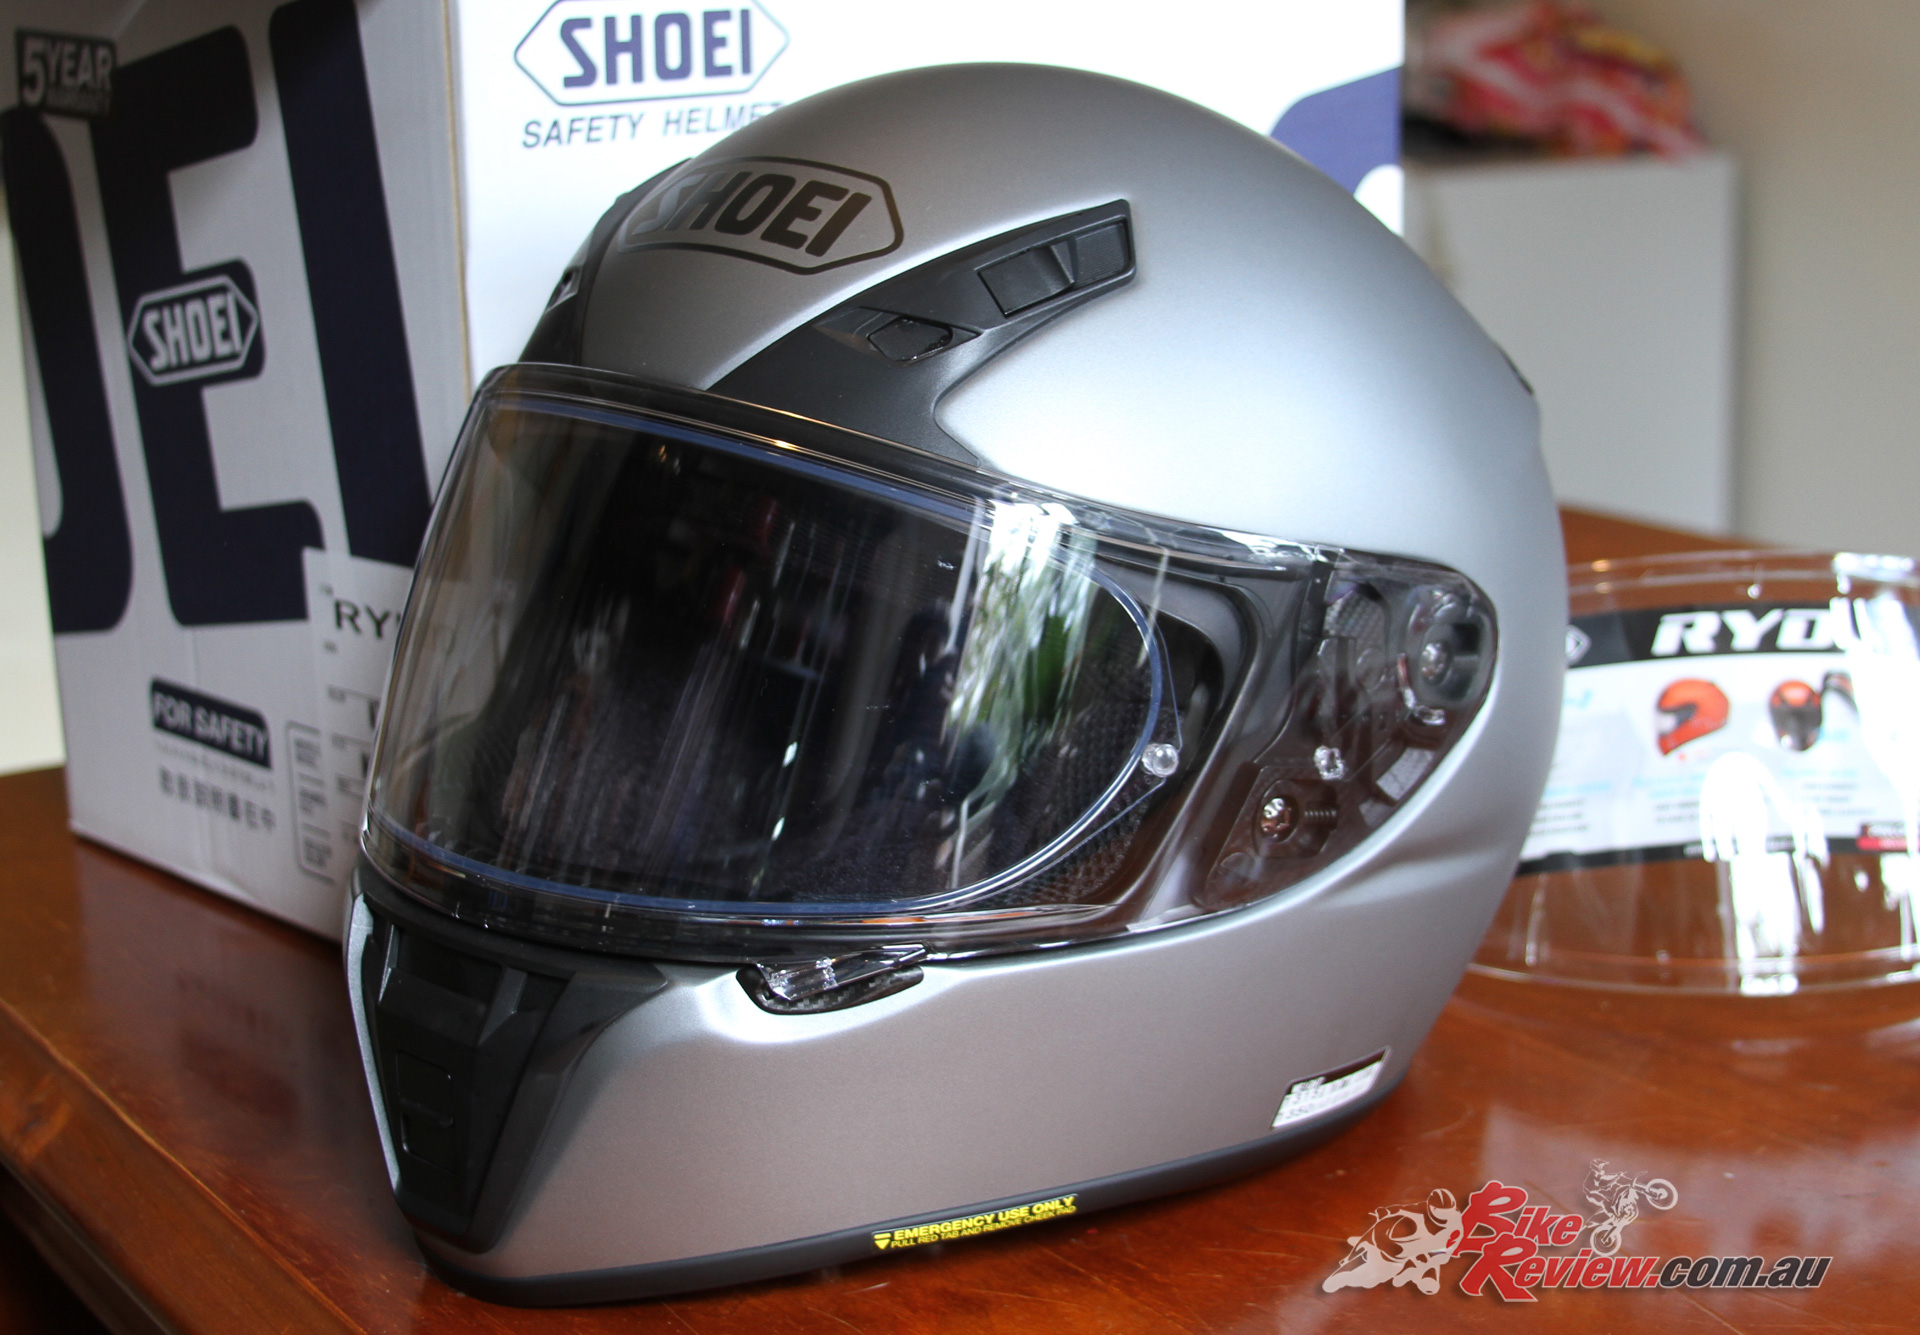 597ed60d Shoei Transitions Adaptive Shield fitted to the new RYD helmet with Pinlock  EVO